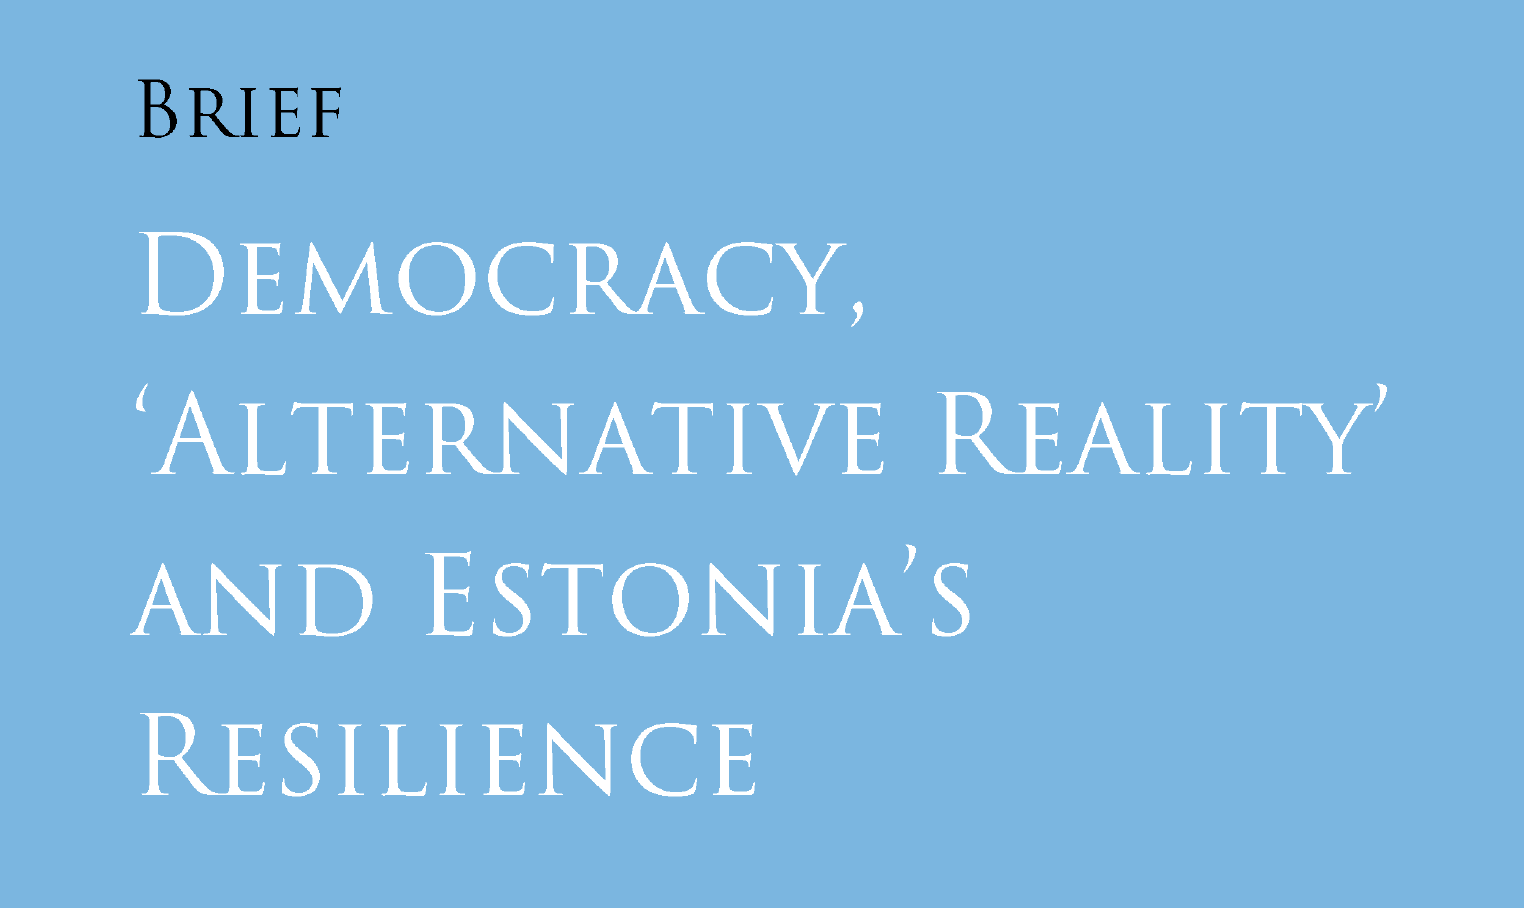 Image for Democracy, 'Alternative Reality' and Estonia's Resilience